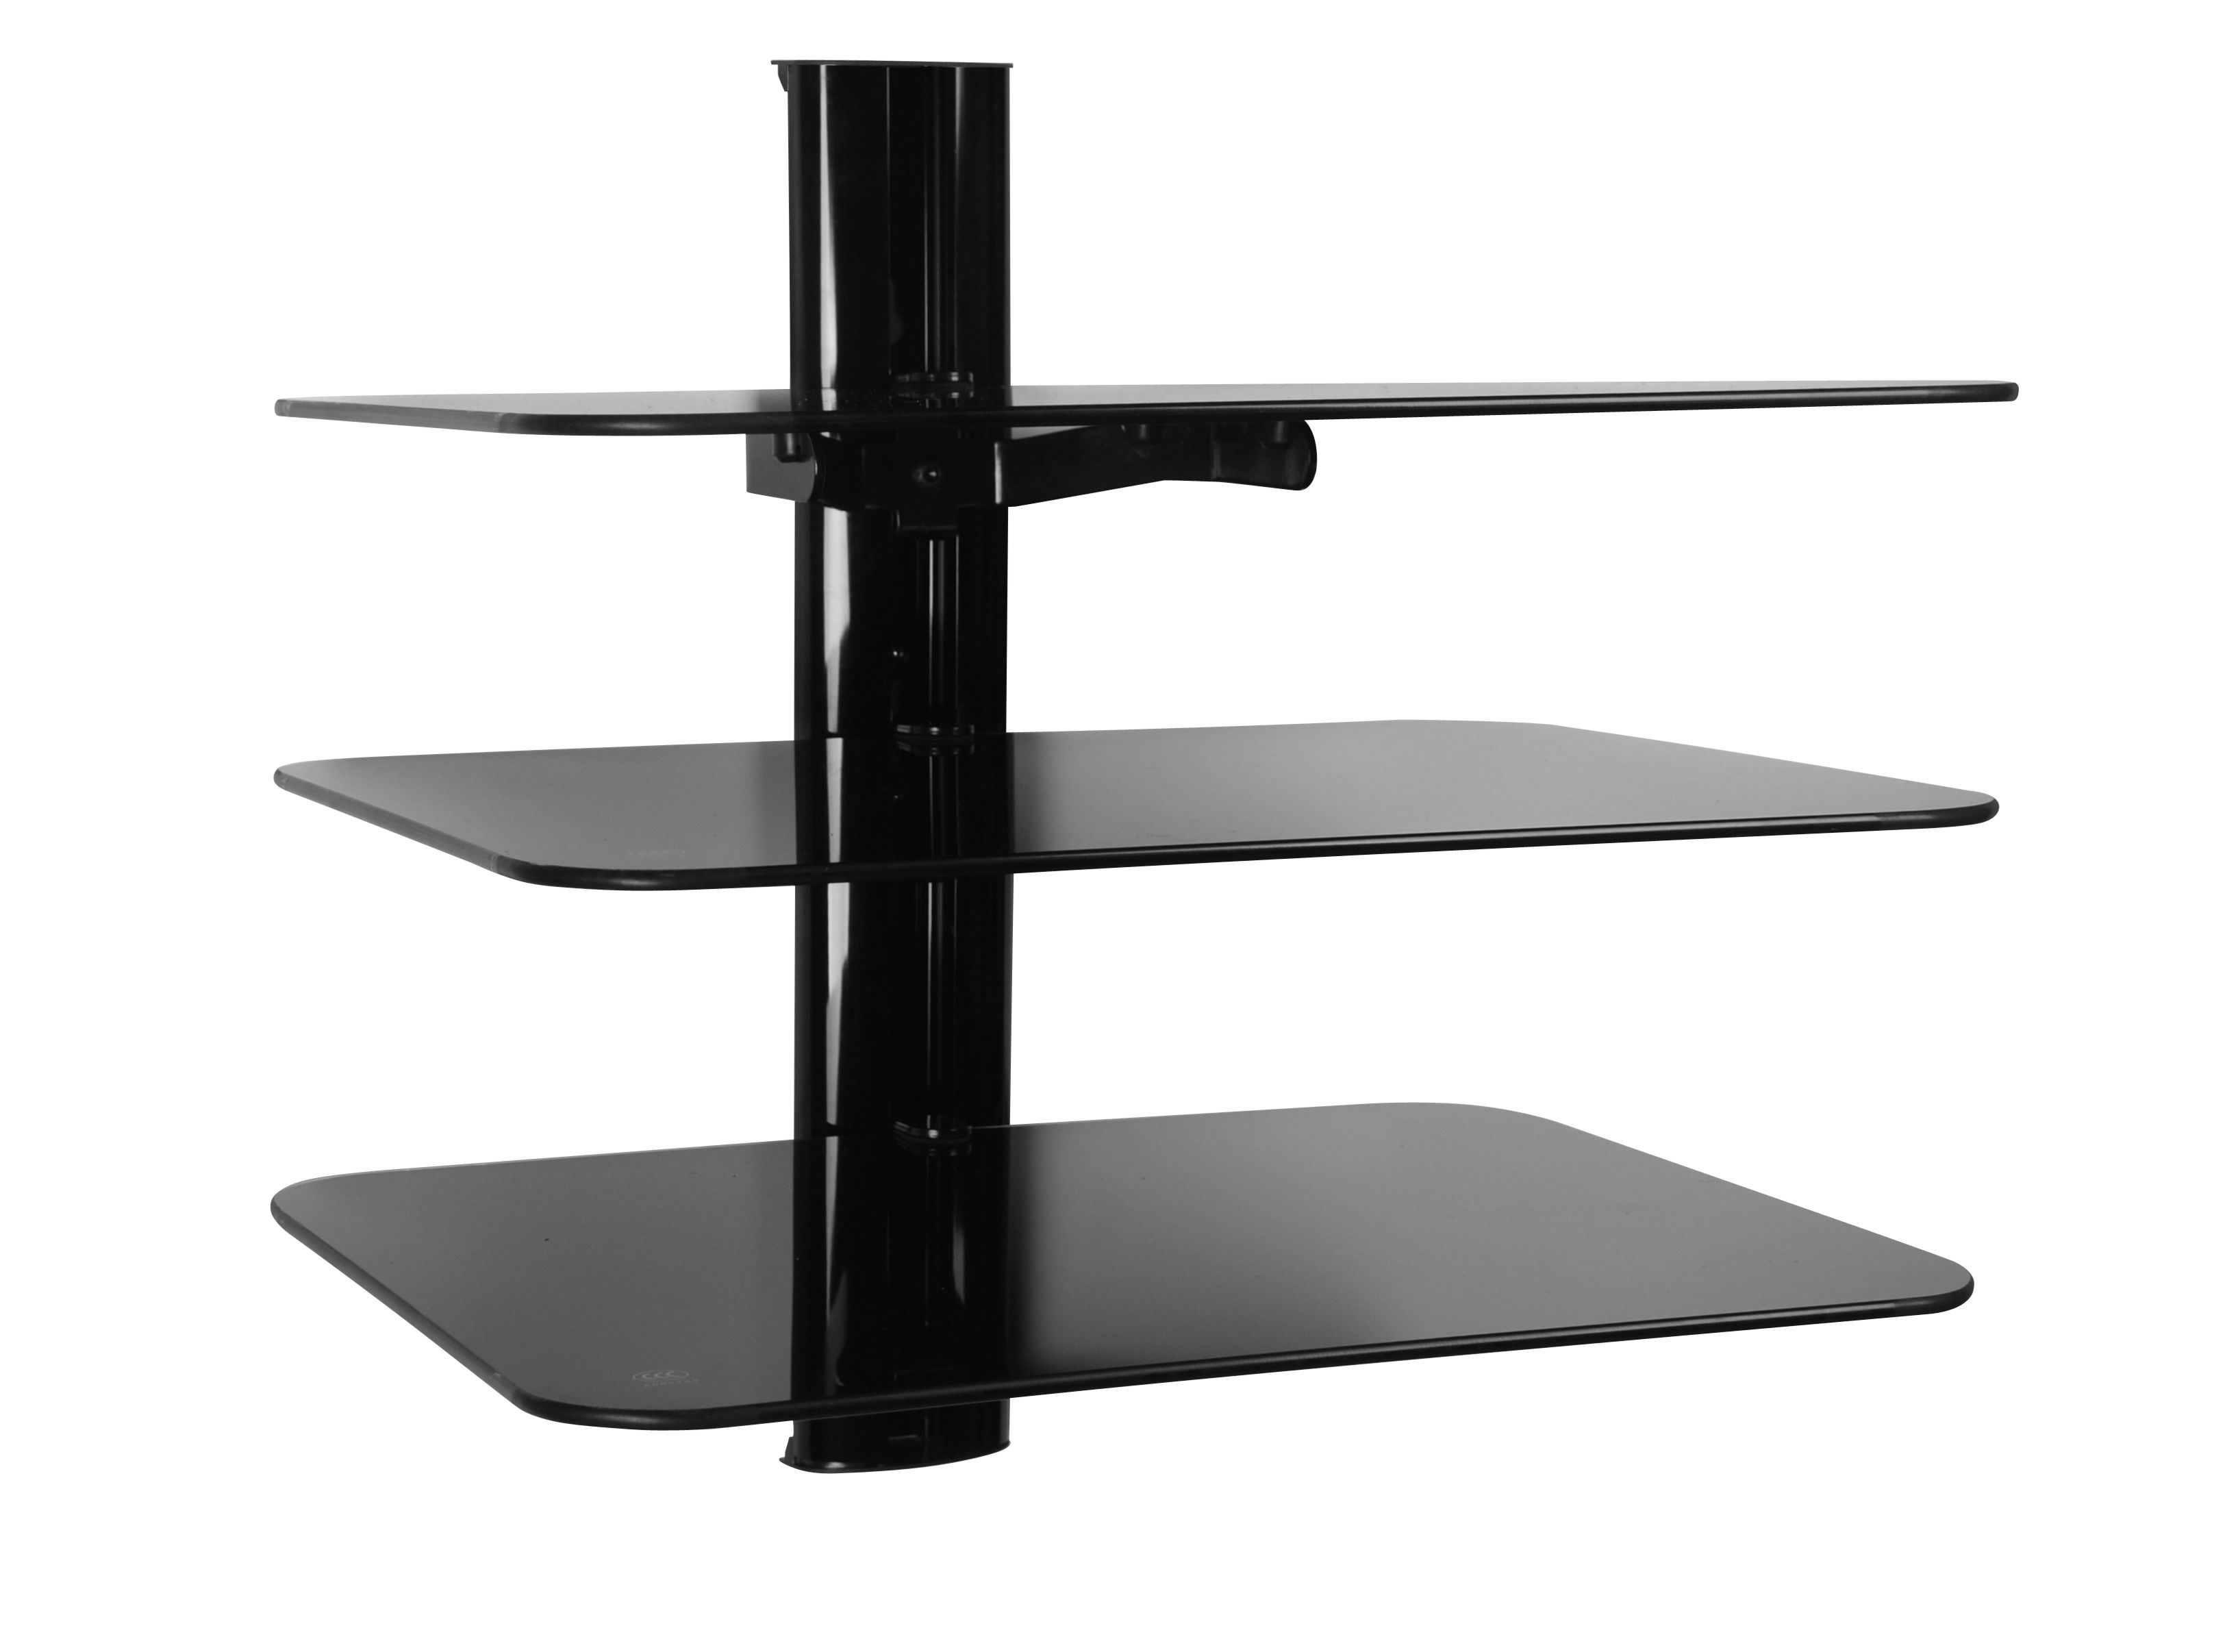 Triple Glass Av Shelving System Pertaining To Floating Black Glass Shelf (Photo 4 of 15)